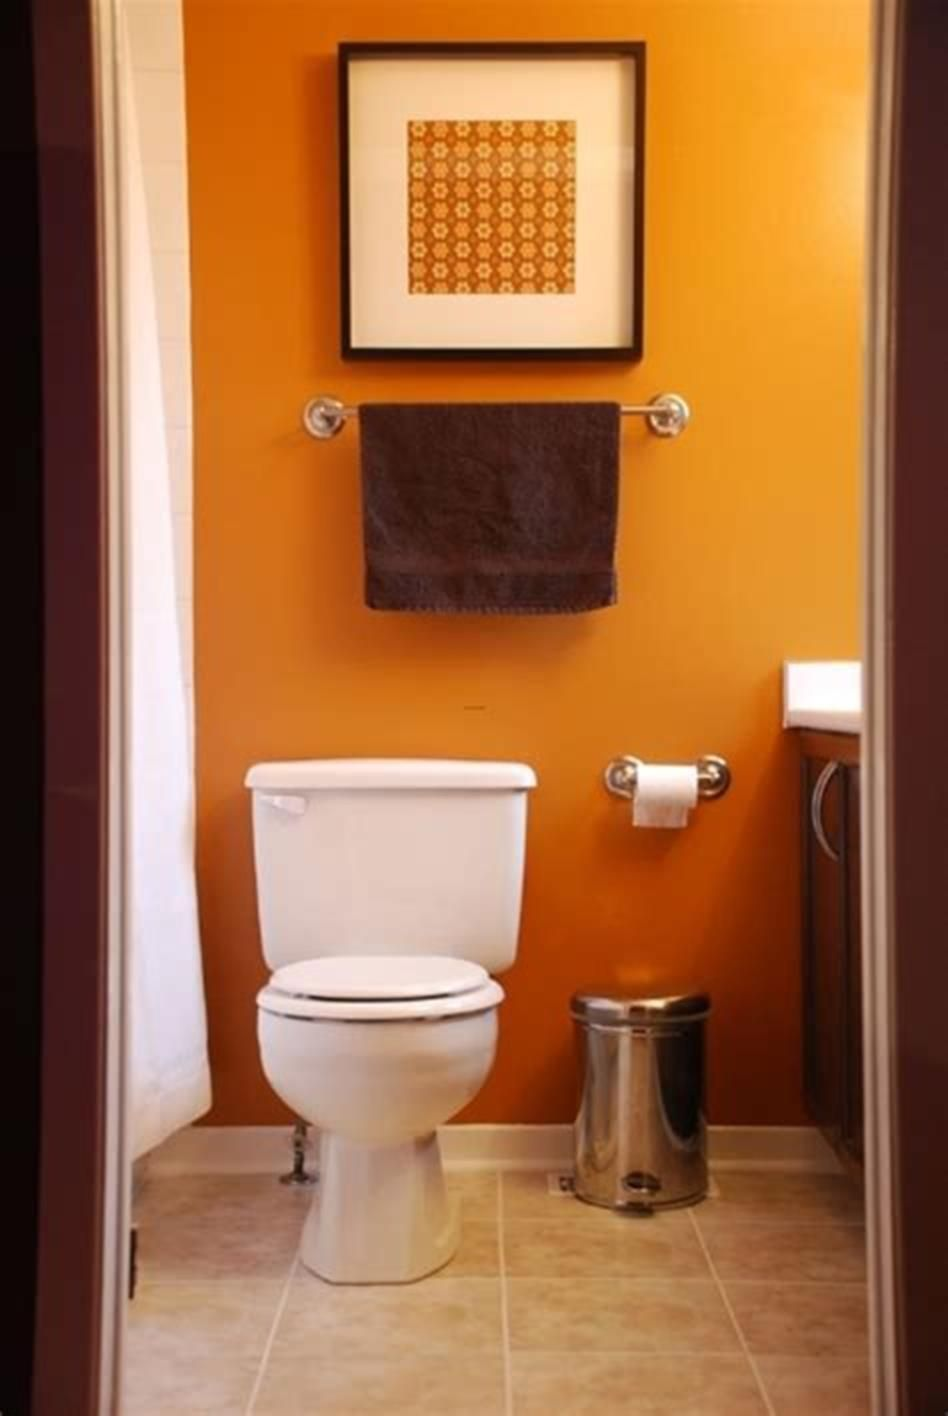 35 Designing The Perfect Bathroom For Your Needs With Images